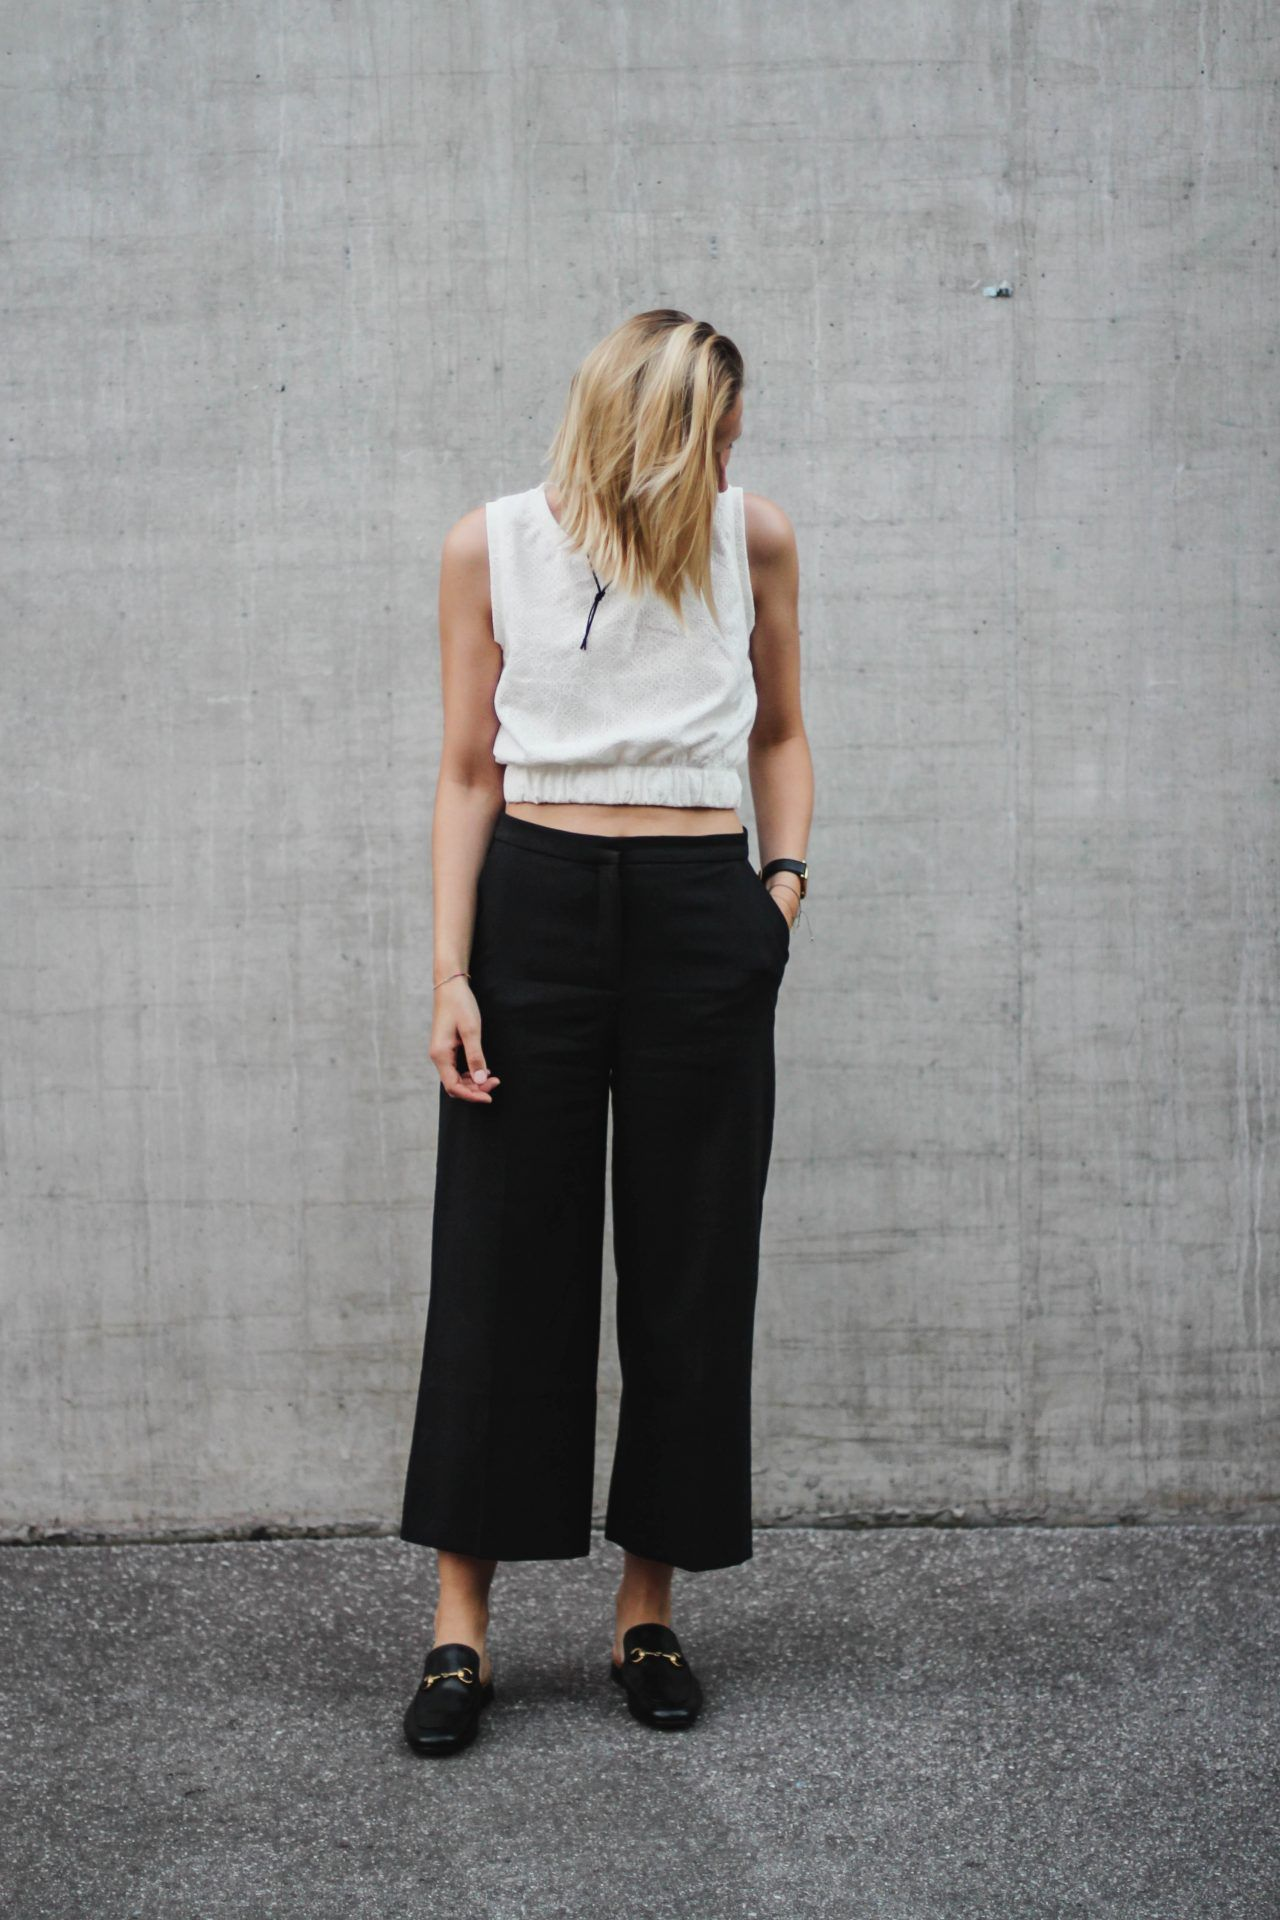 5ffe31e52 tifmys – Suede choker, Zara crop top and culottes & Gucci Princetown  slippers.